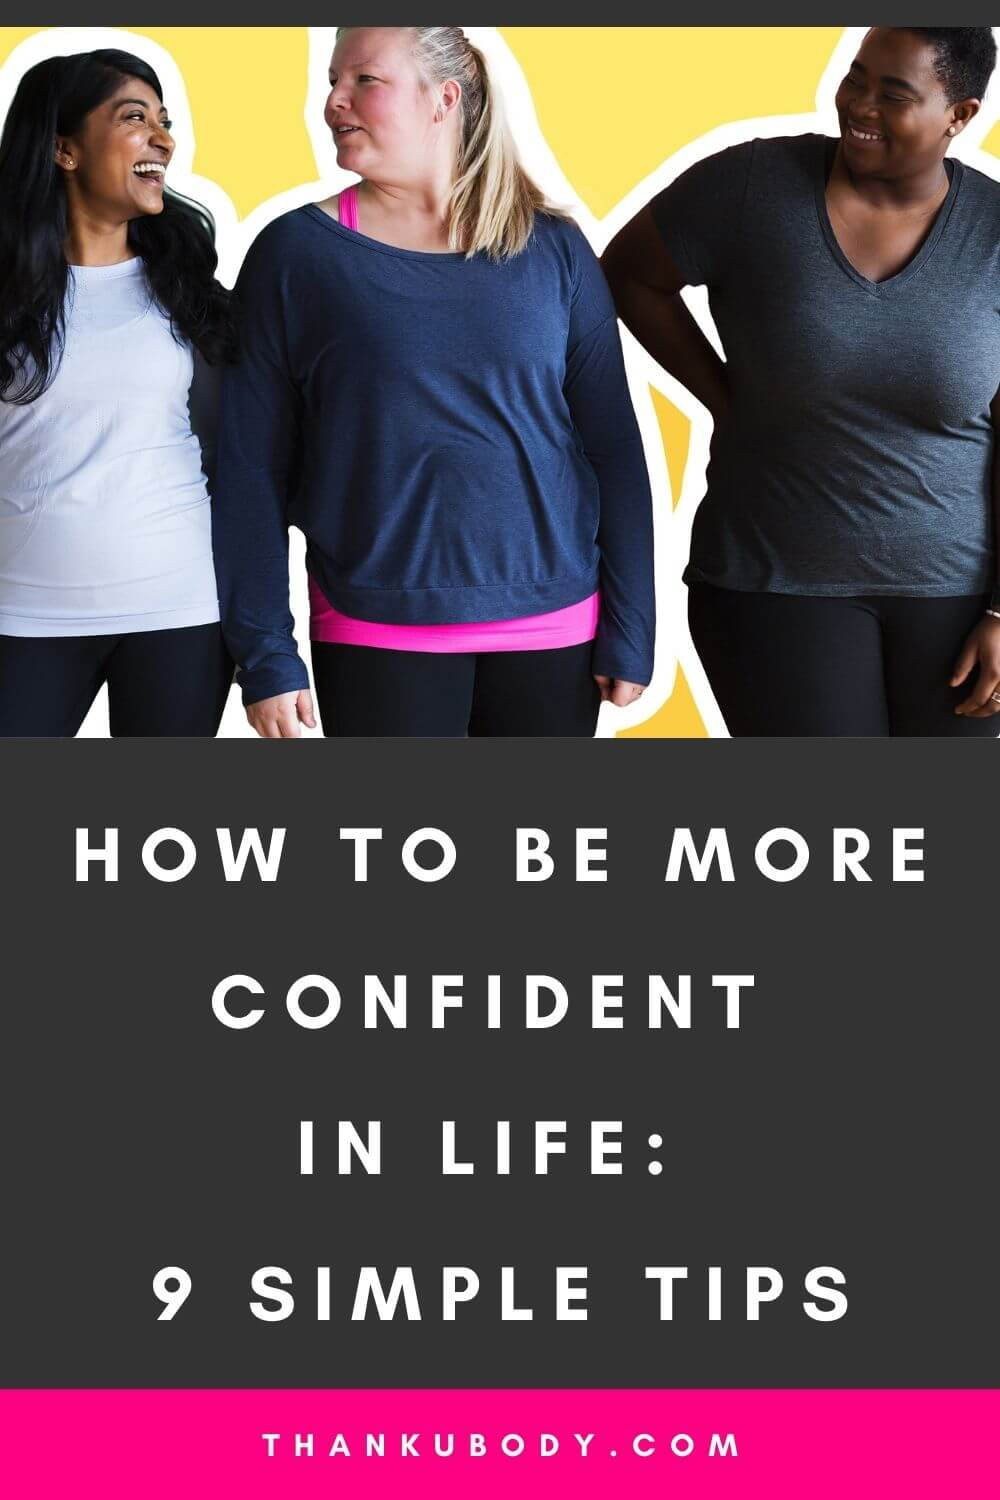 How to be More Confident in Life: 9 Simple Tips